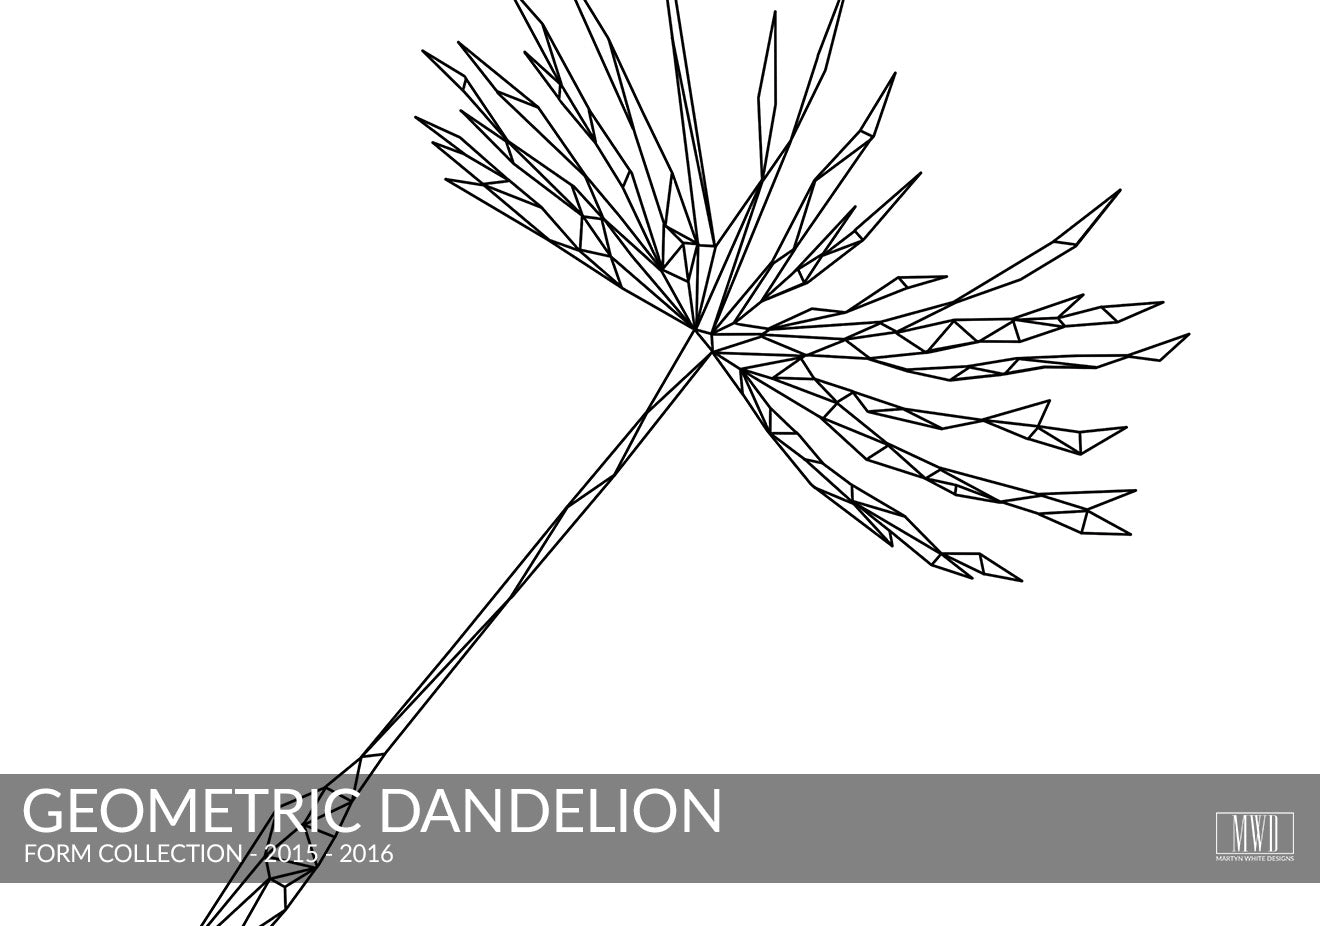 Geometric Dandelion seed black and white art print